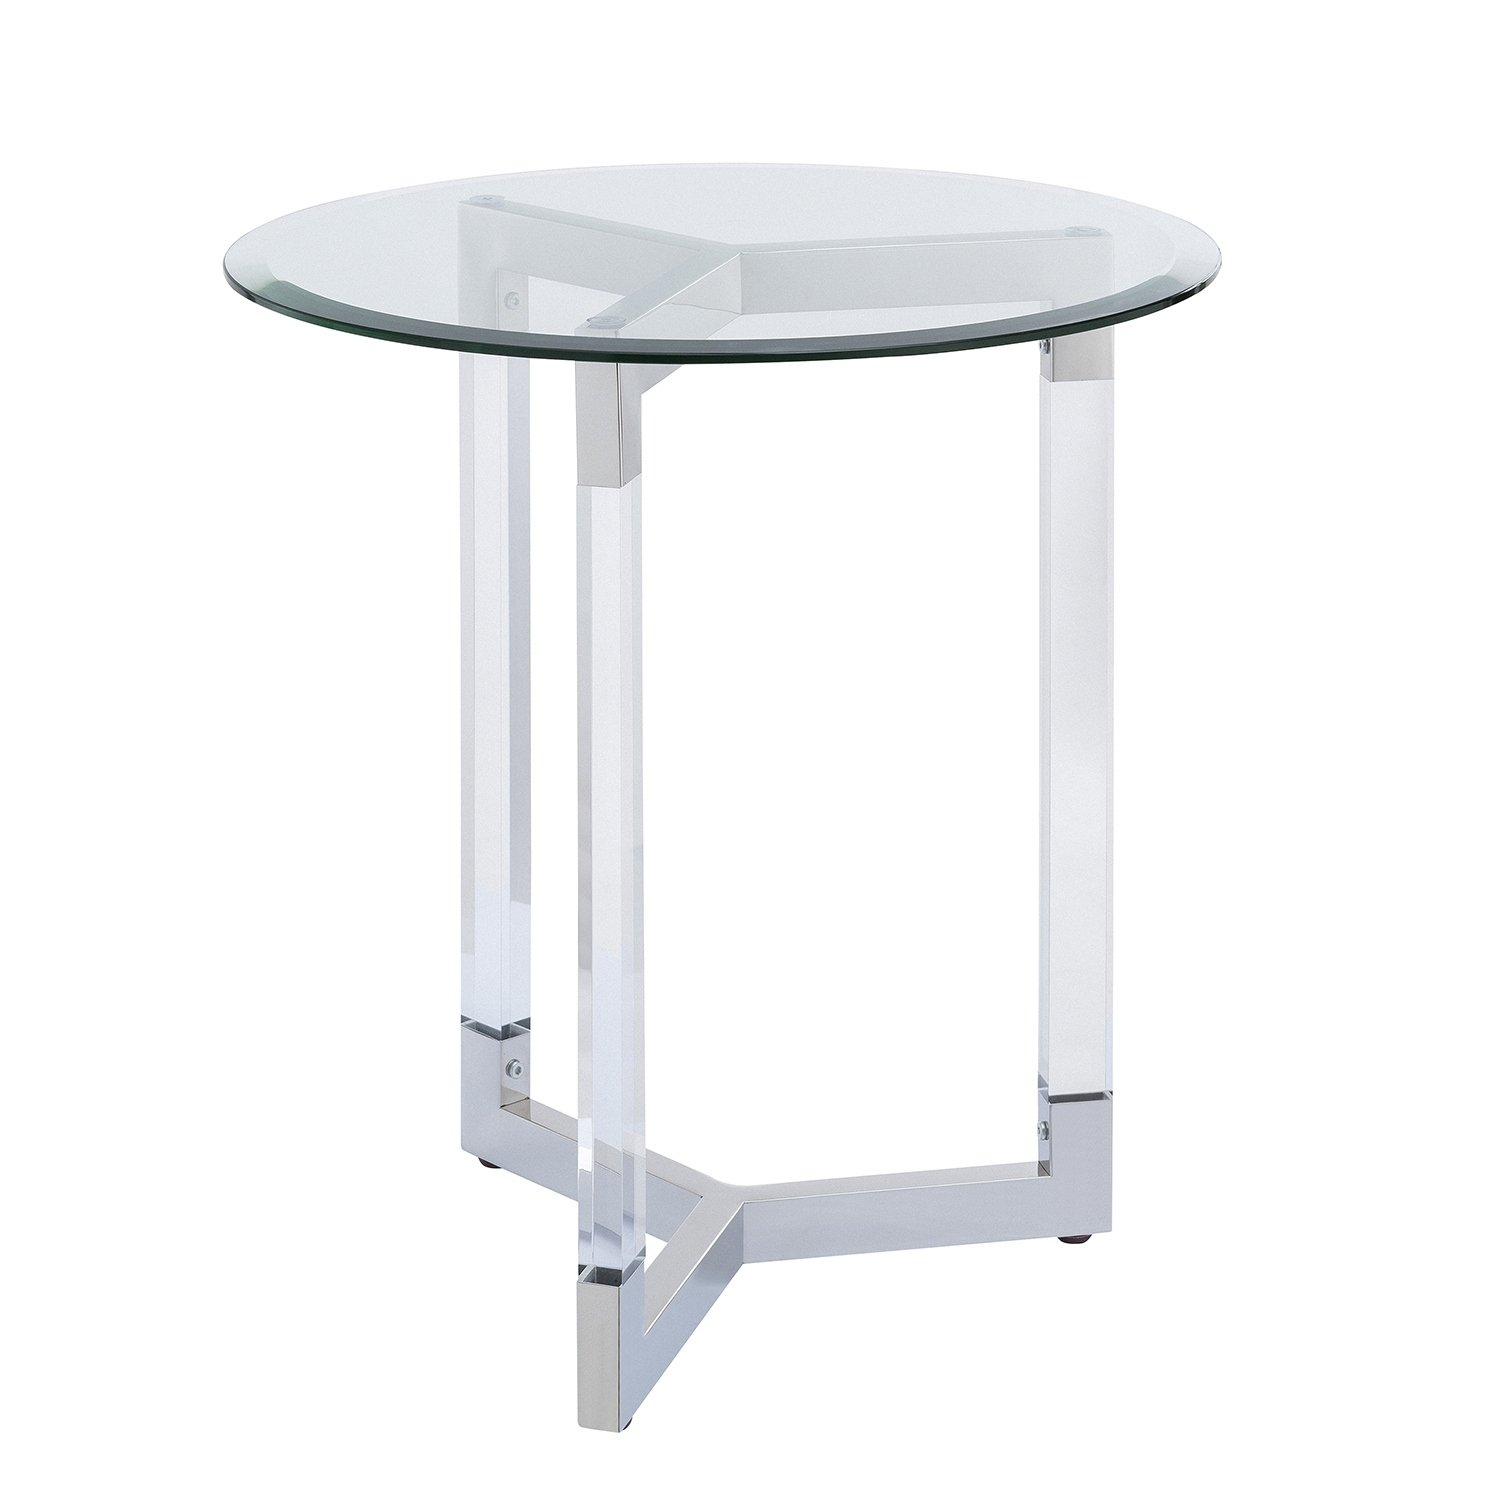 harper blvd dauphine round acrylic accent table with glass top free shipping today davenport furniture rustic gray outside patio rolling tool box french farmhouse coffee short